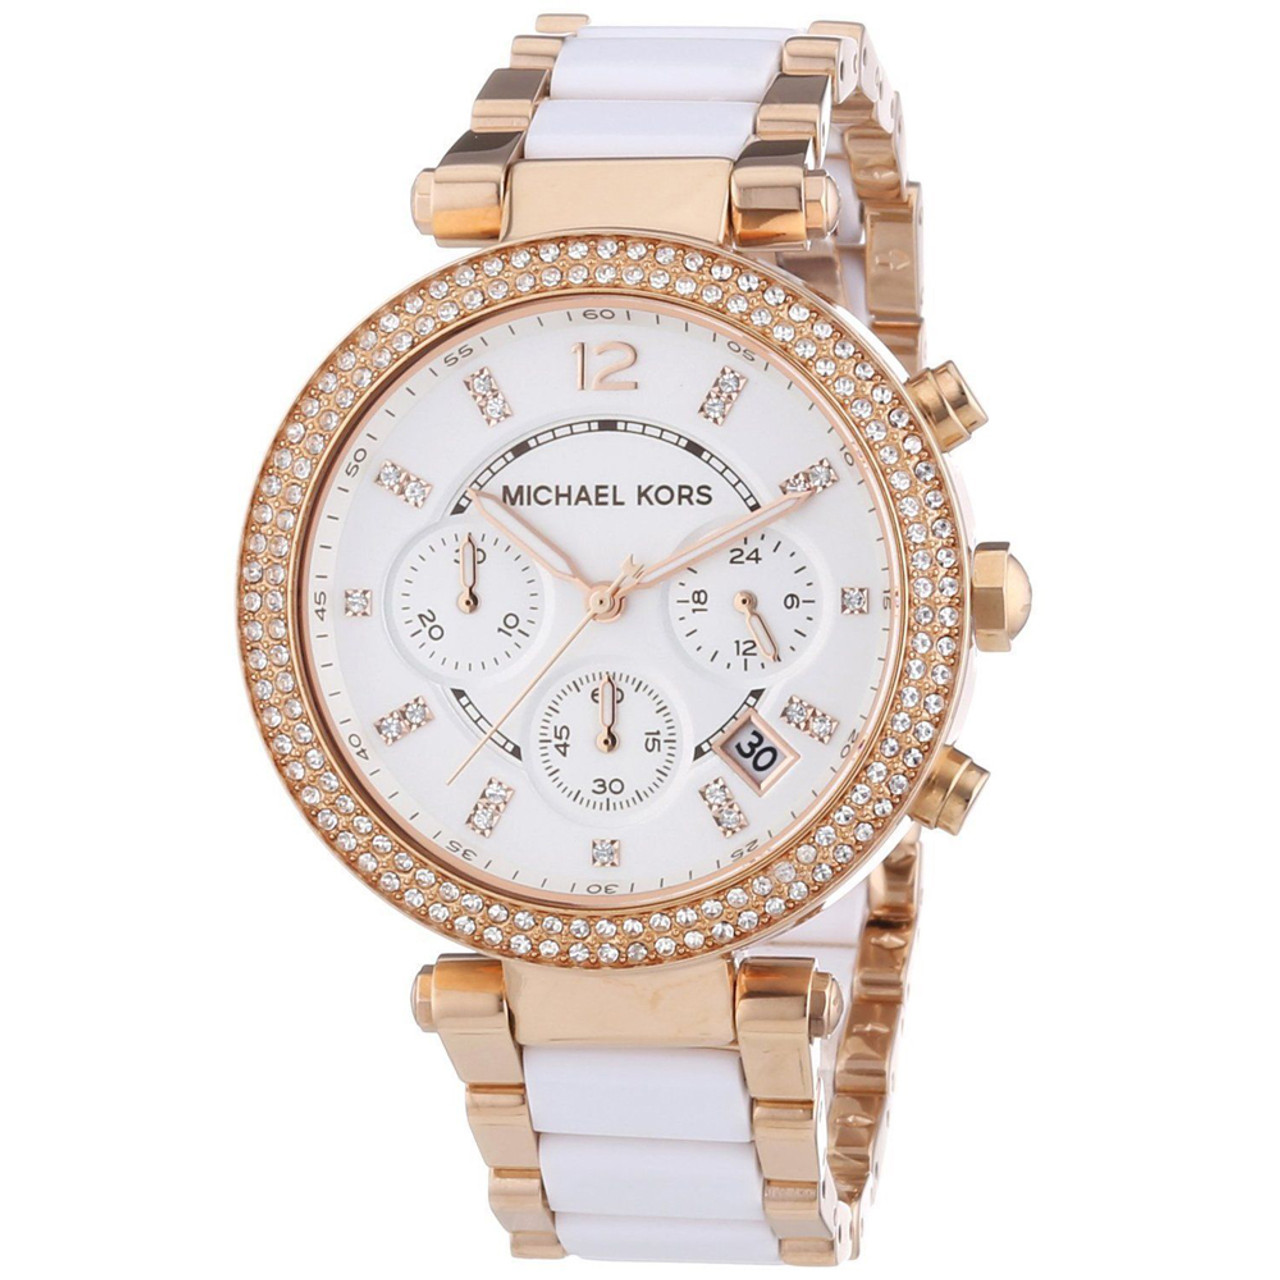 ce73e76c37d Michael Kors MK5774 Parker Chrono Crystal Rose-tone Stainless Steel Womens  Watch - The Royal Gift Inc.